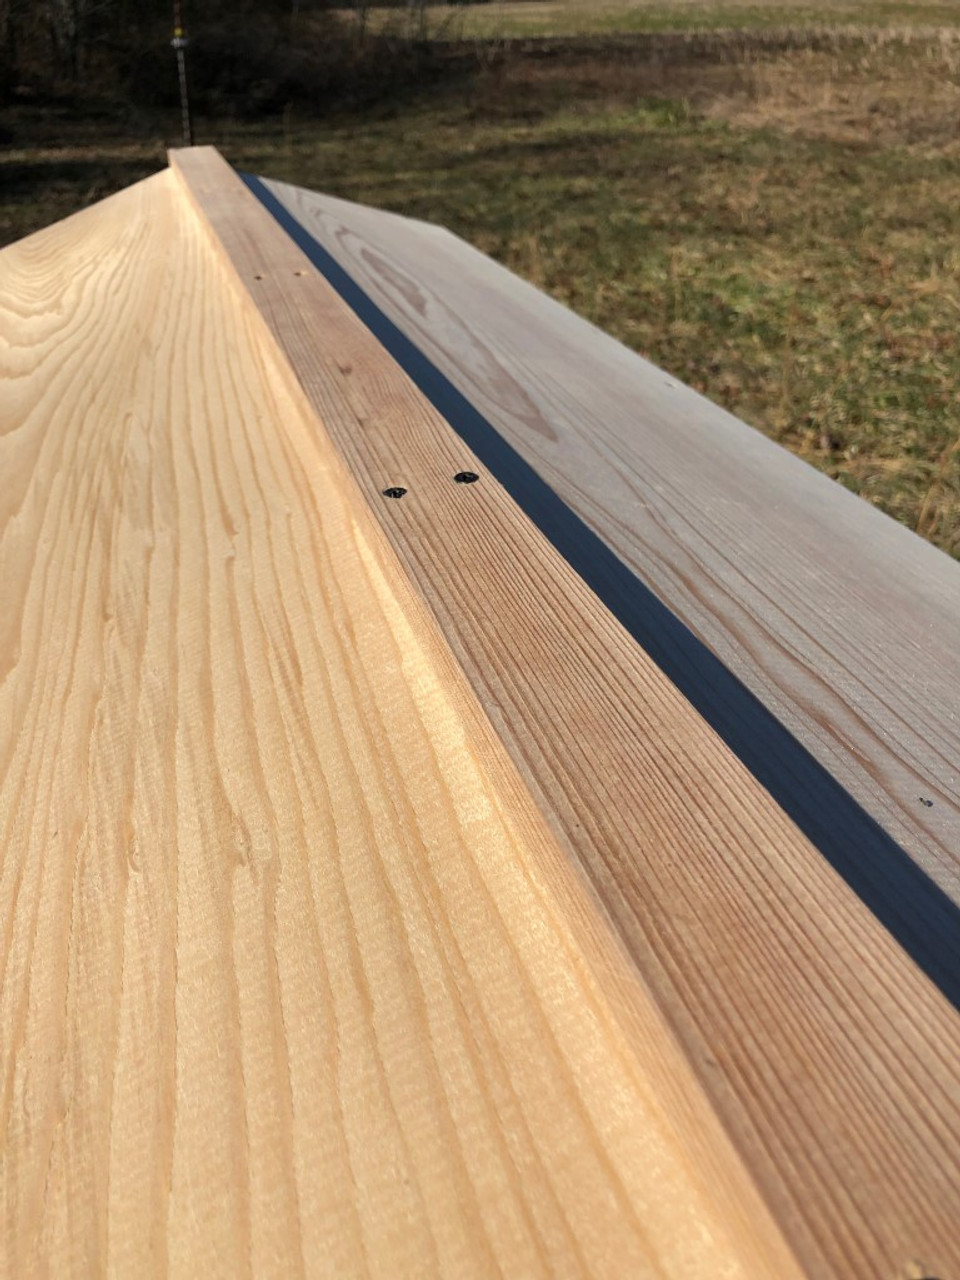 This is the roof ridge of the Gold Star top bar hive.  Sustainably harvested cypress stands up beautifully to the vagaries of life outside in your apiary.